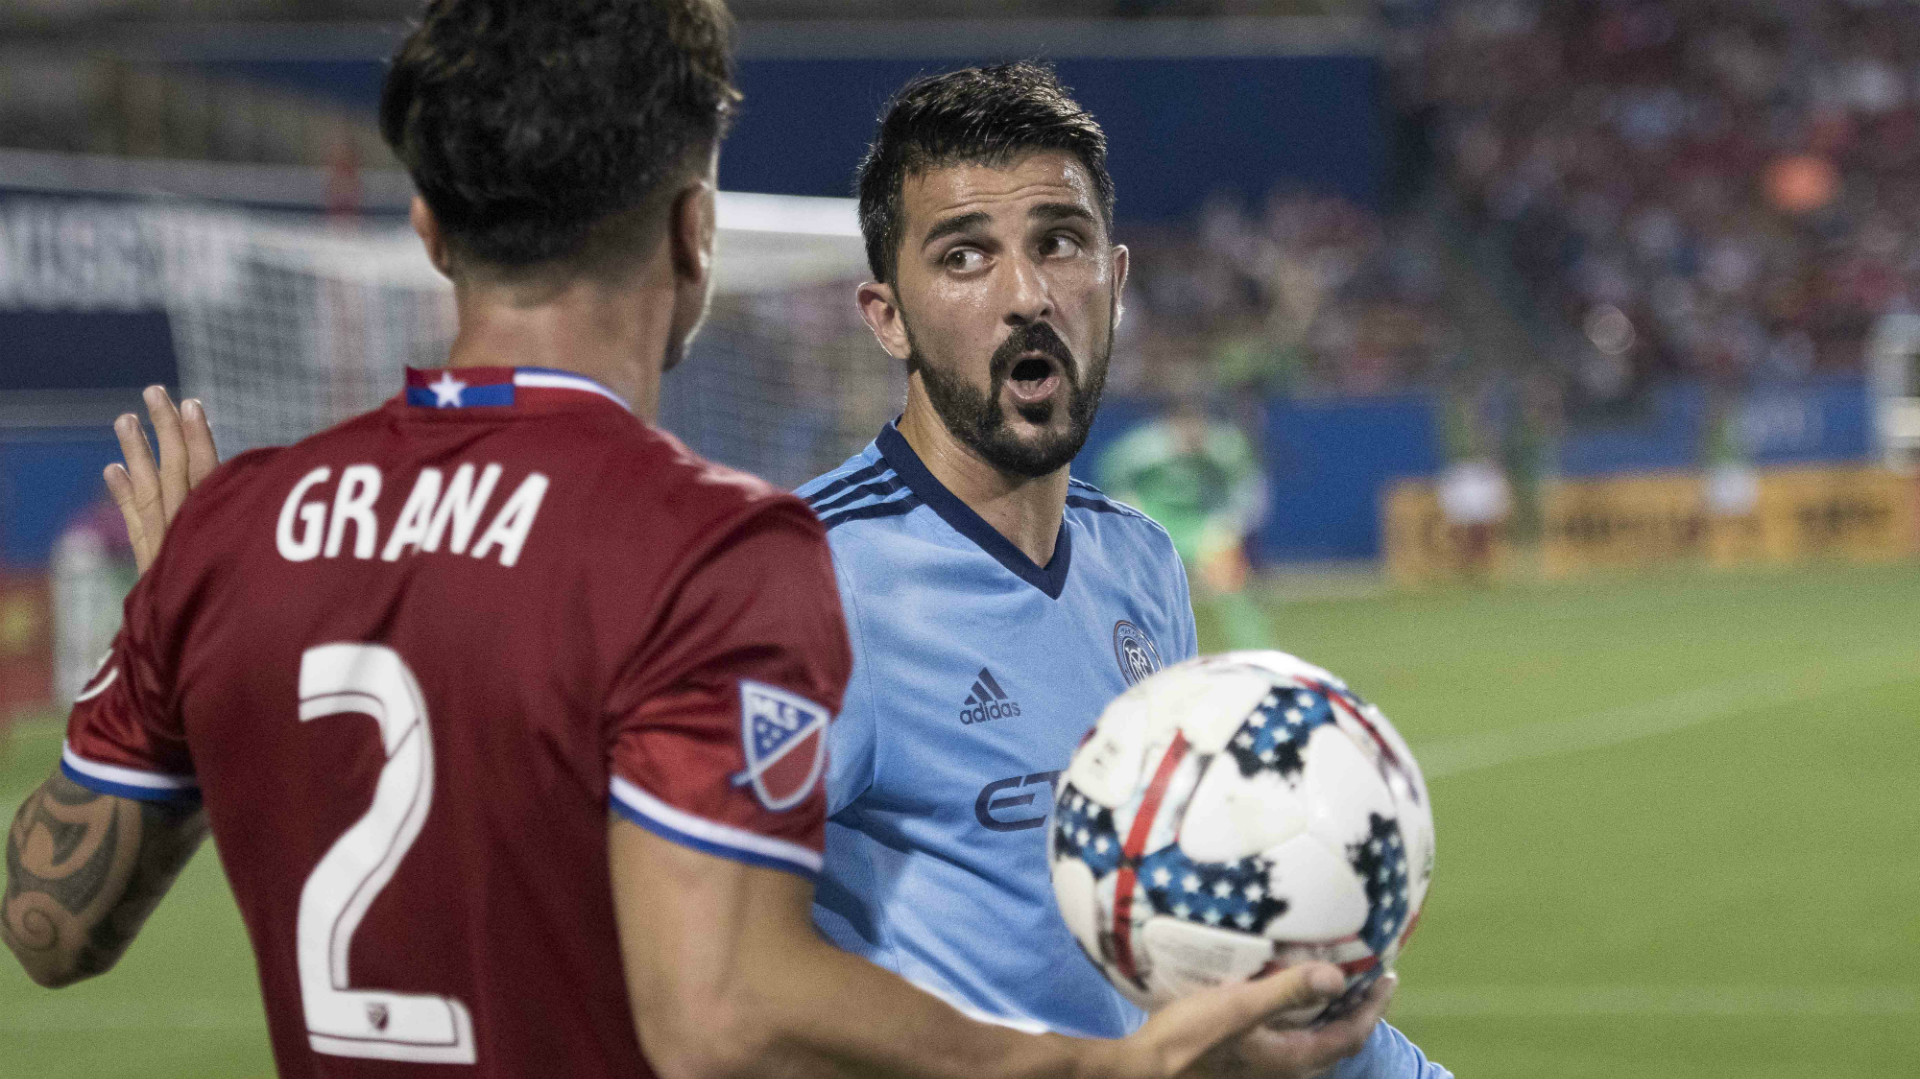 Hernan Grana FC Dallas David Villa New York City FC